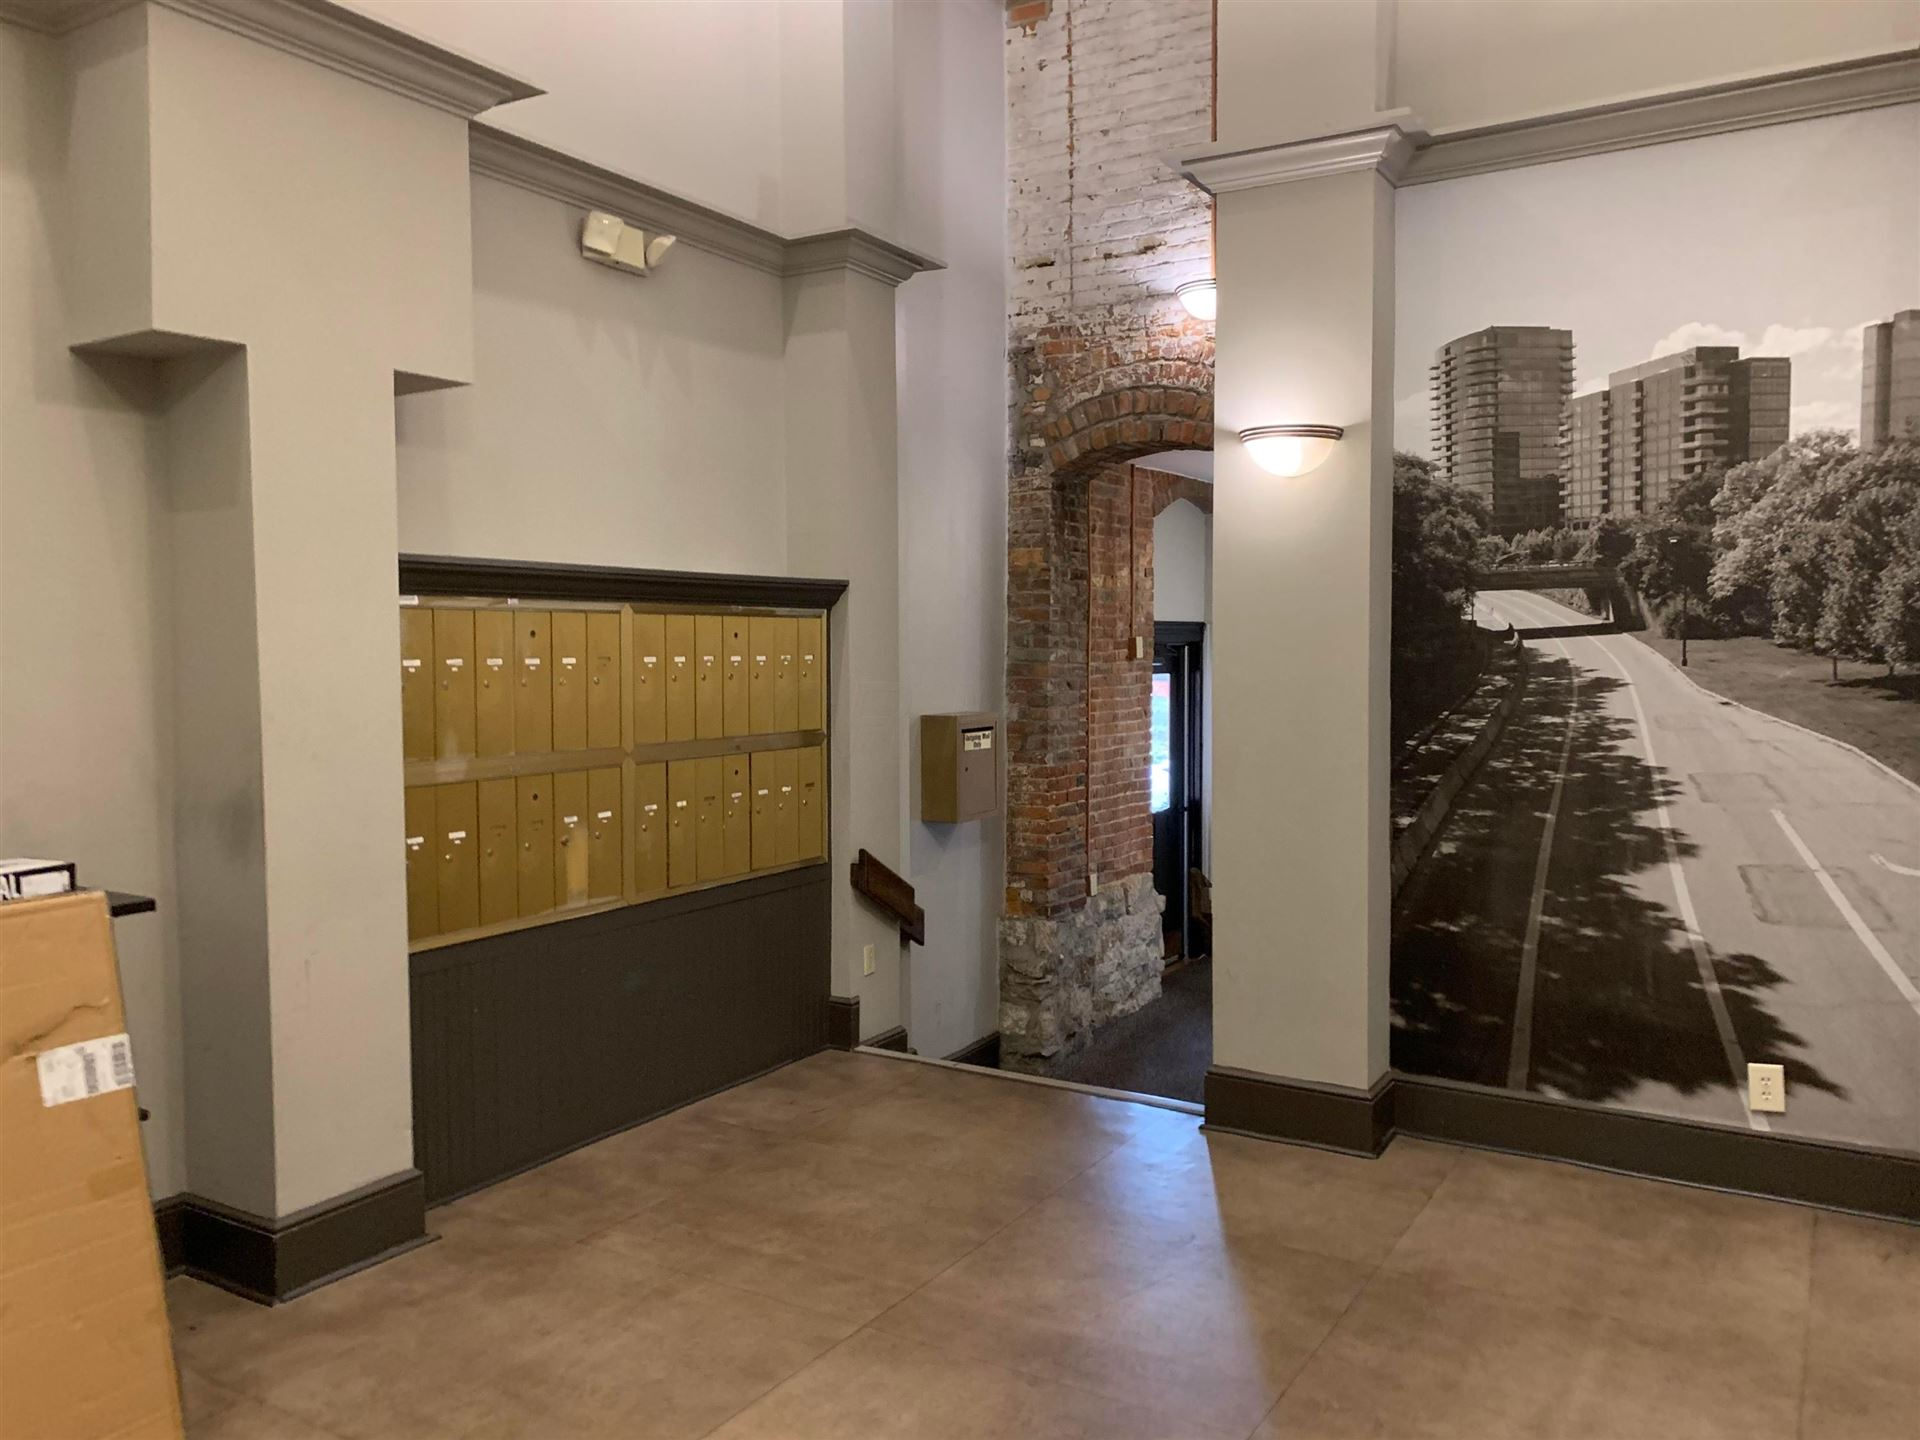 Photo of 544 S Front Street #217, Columbus, OH 43215 (MLS # 221012133)